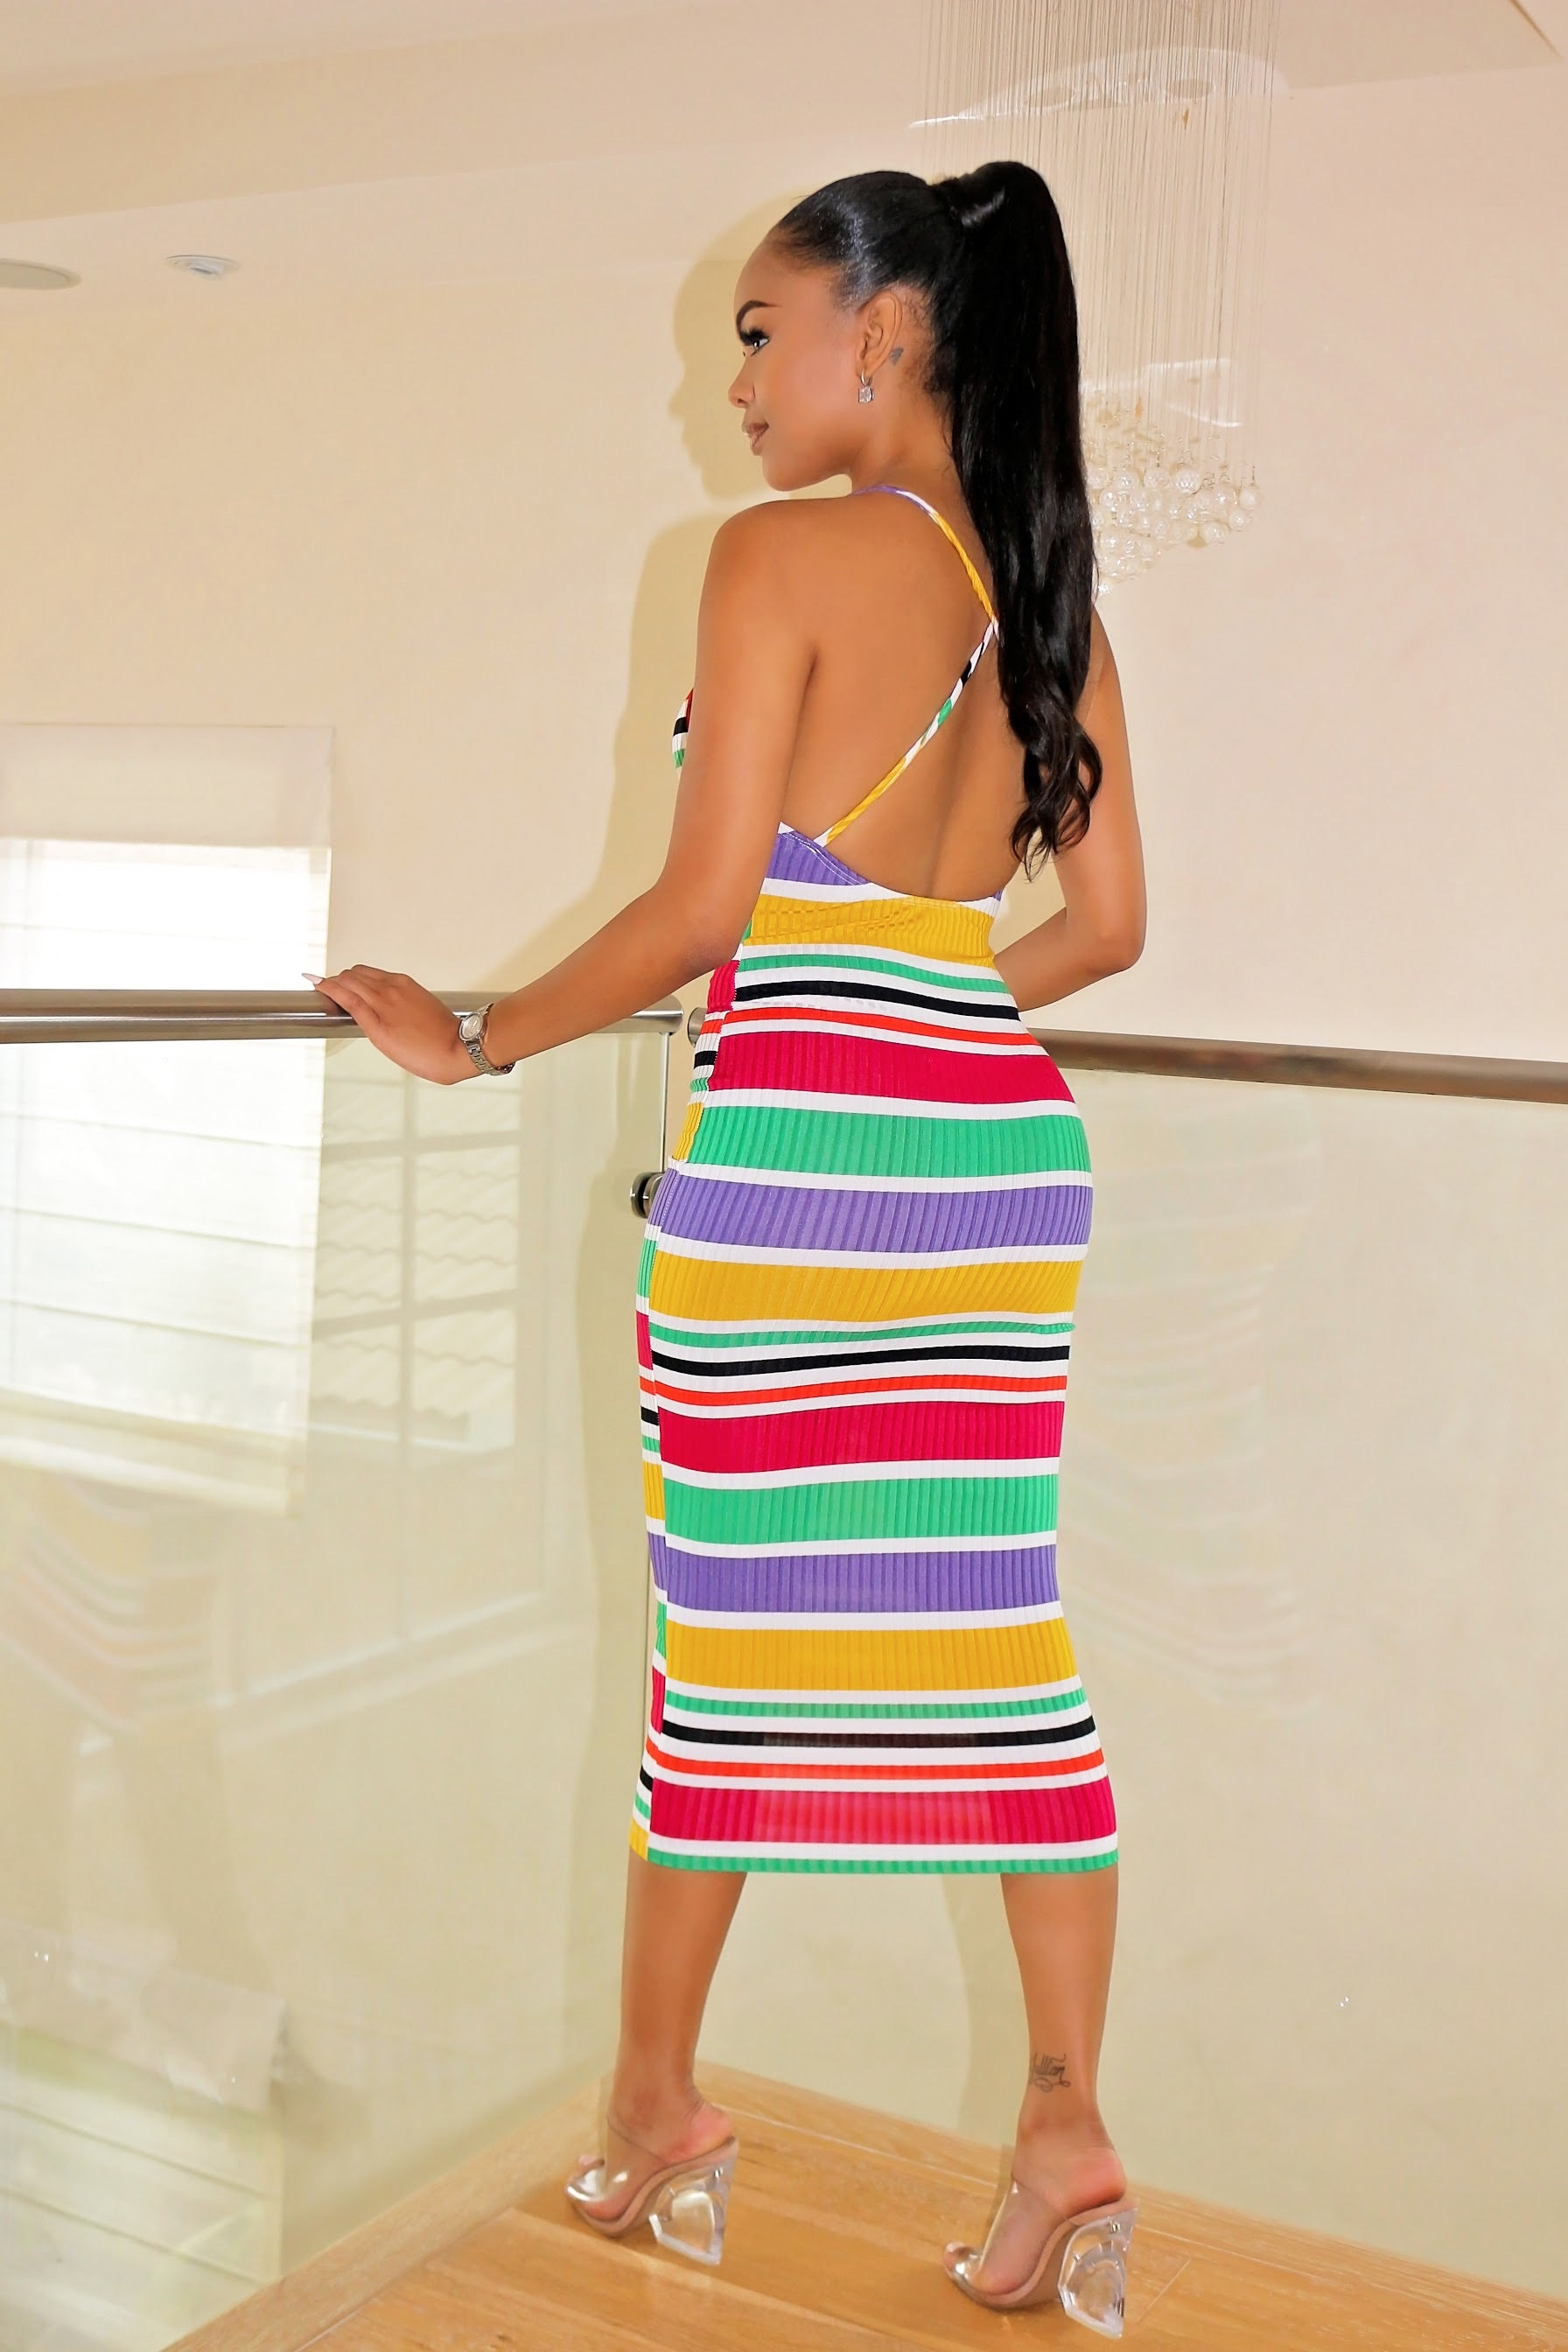 Striped Down Pretty colorful Dress - Semai House Of fashion